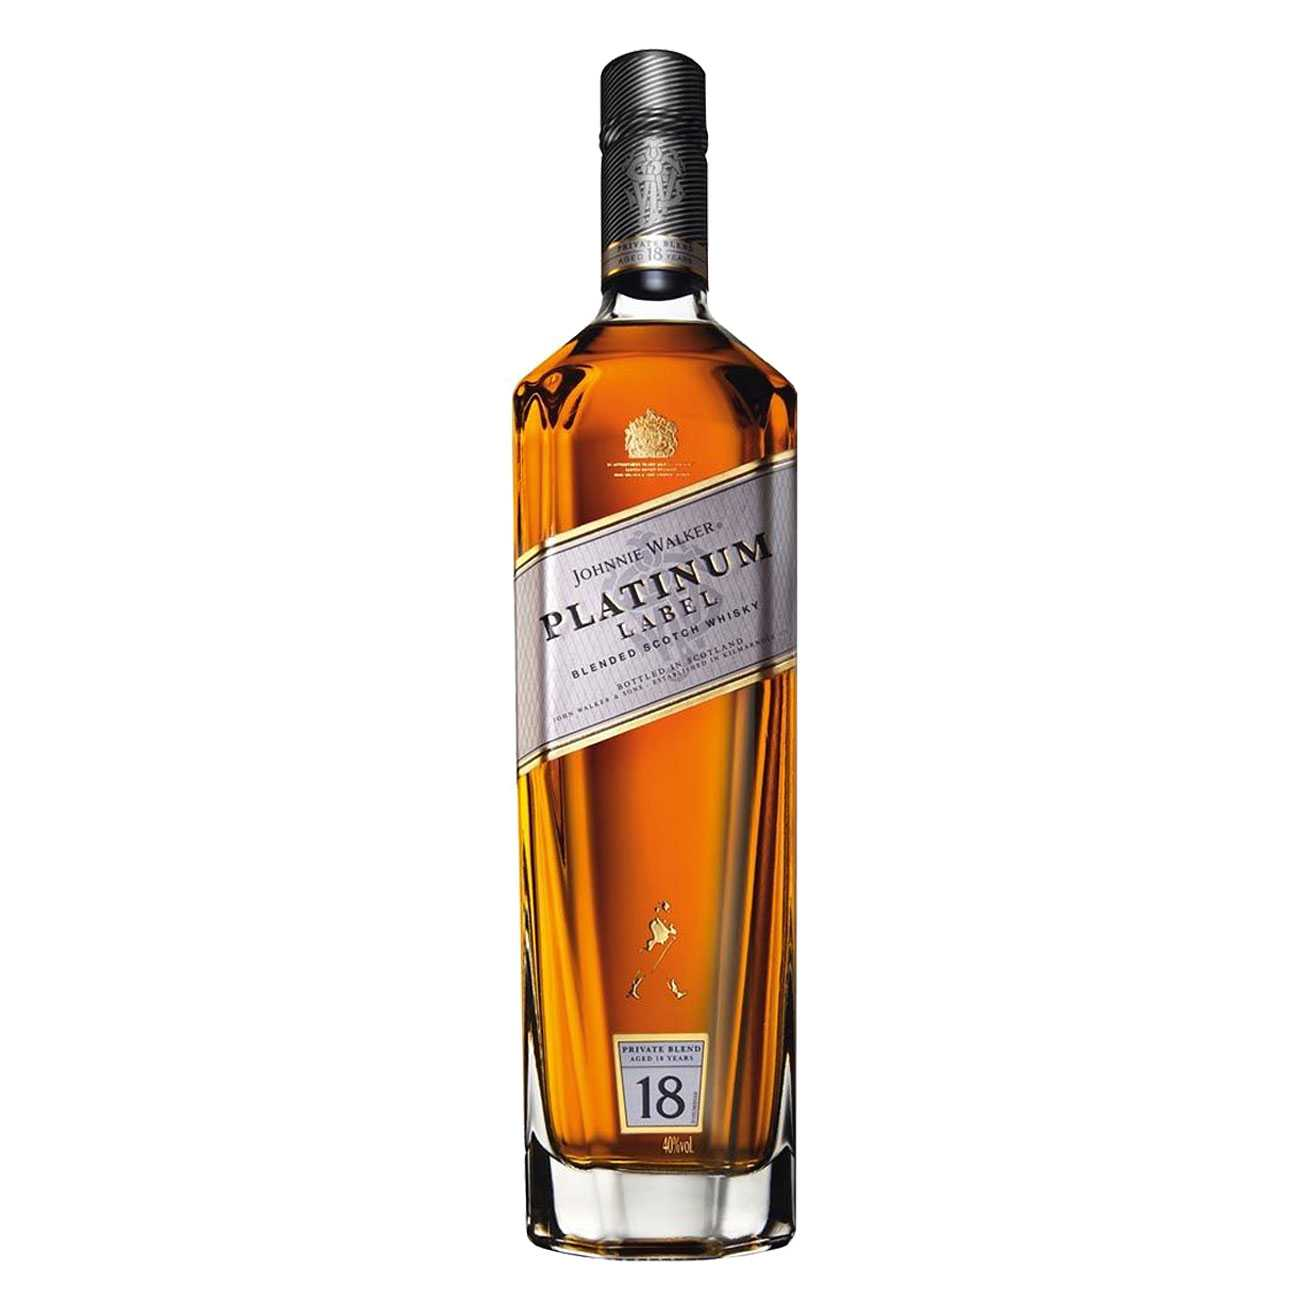 Whisky scotian, PLATINUM LABEL 18 YEARS OLD 1000 ML, Johnnie Walker